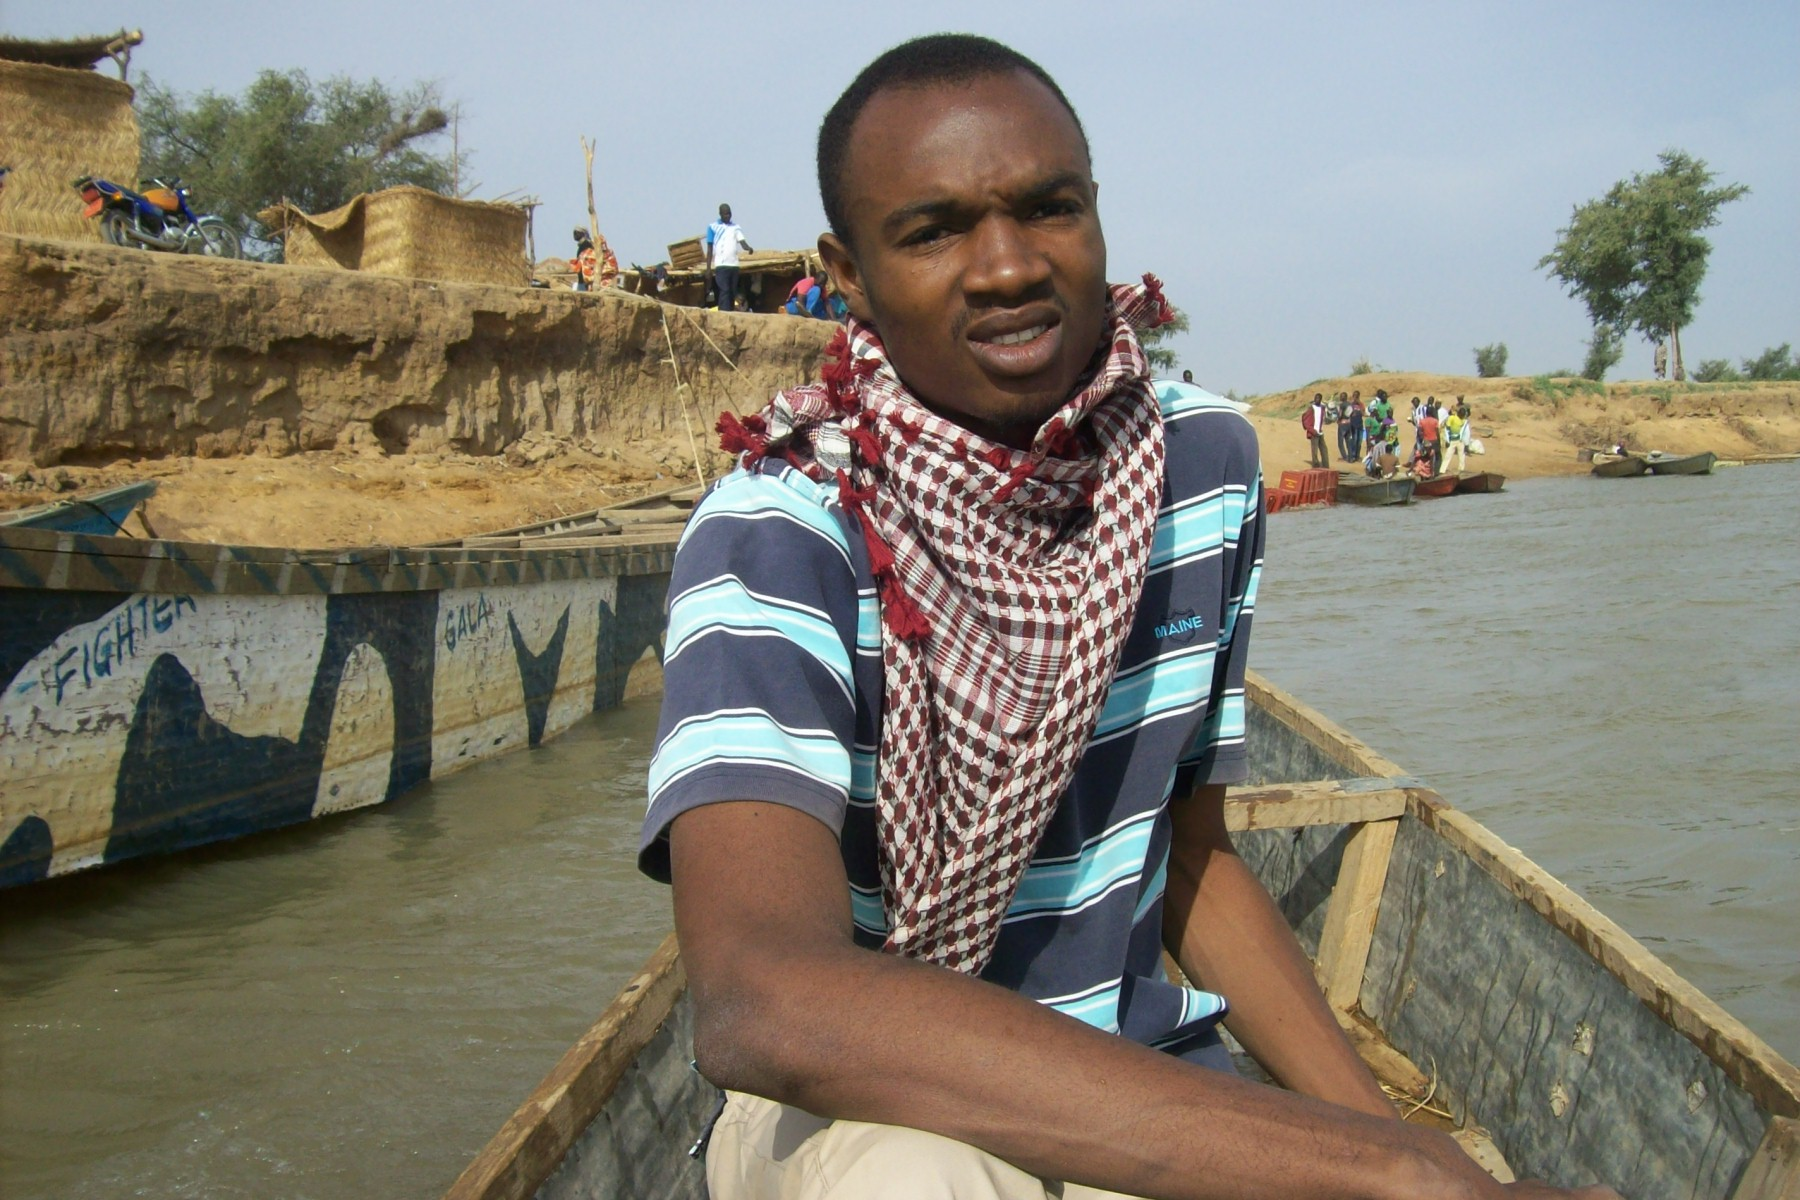 Canoeing the Chadian border into Cameroon.